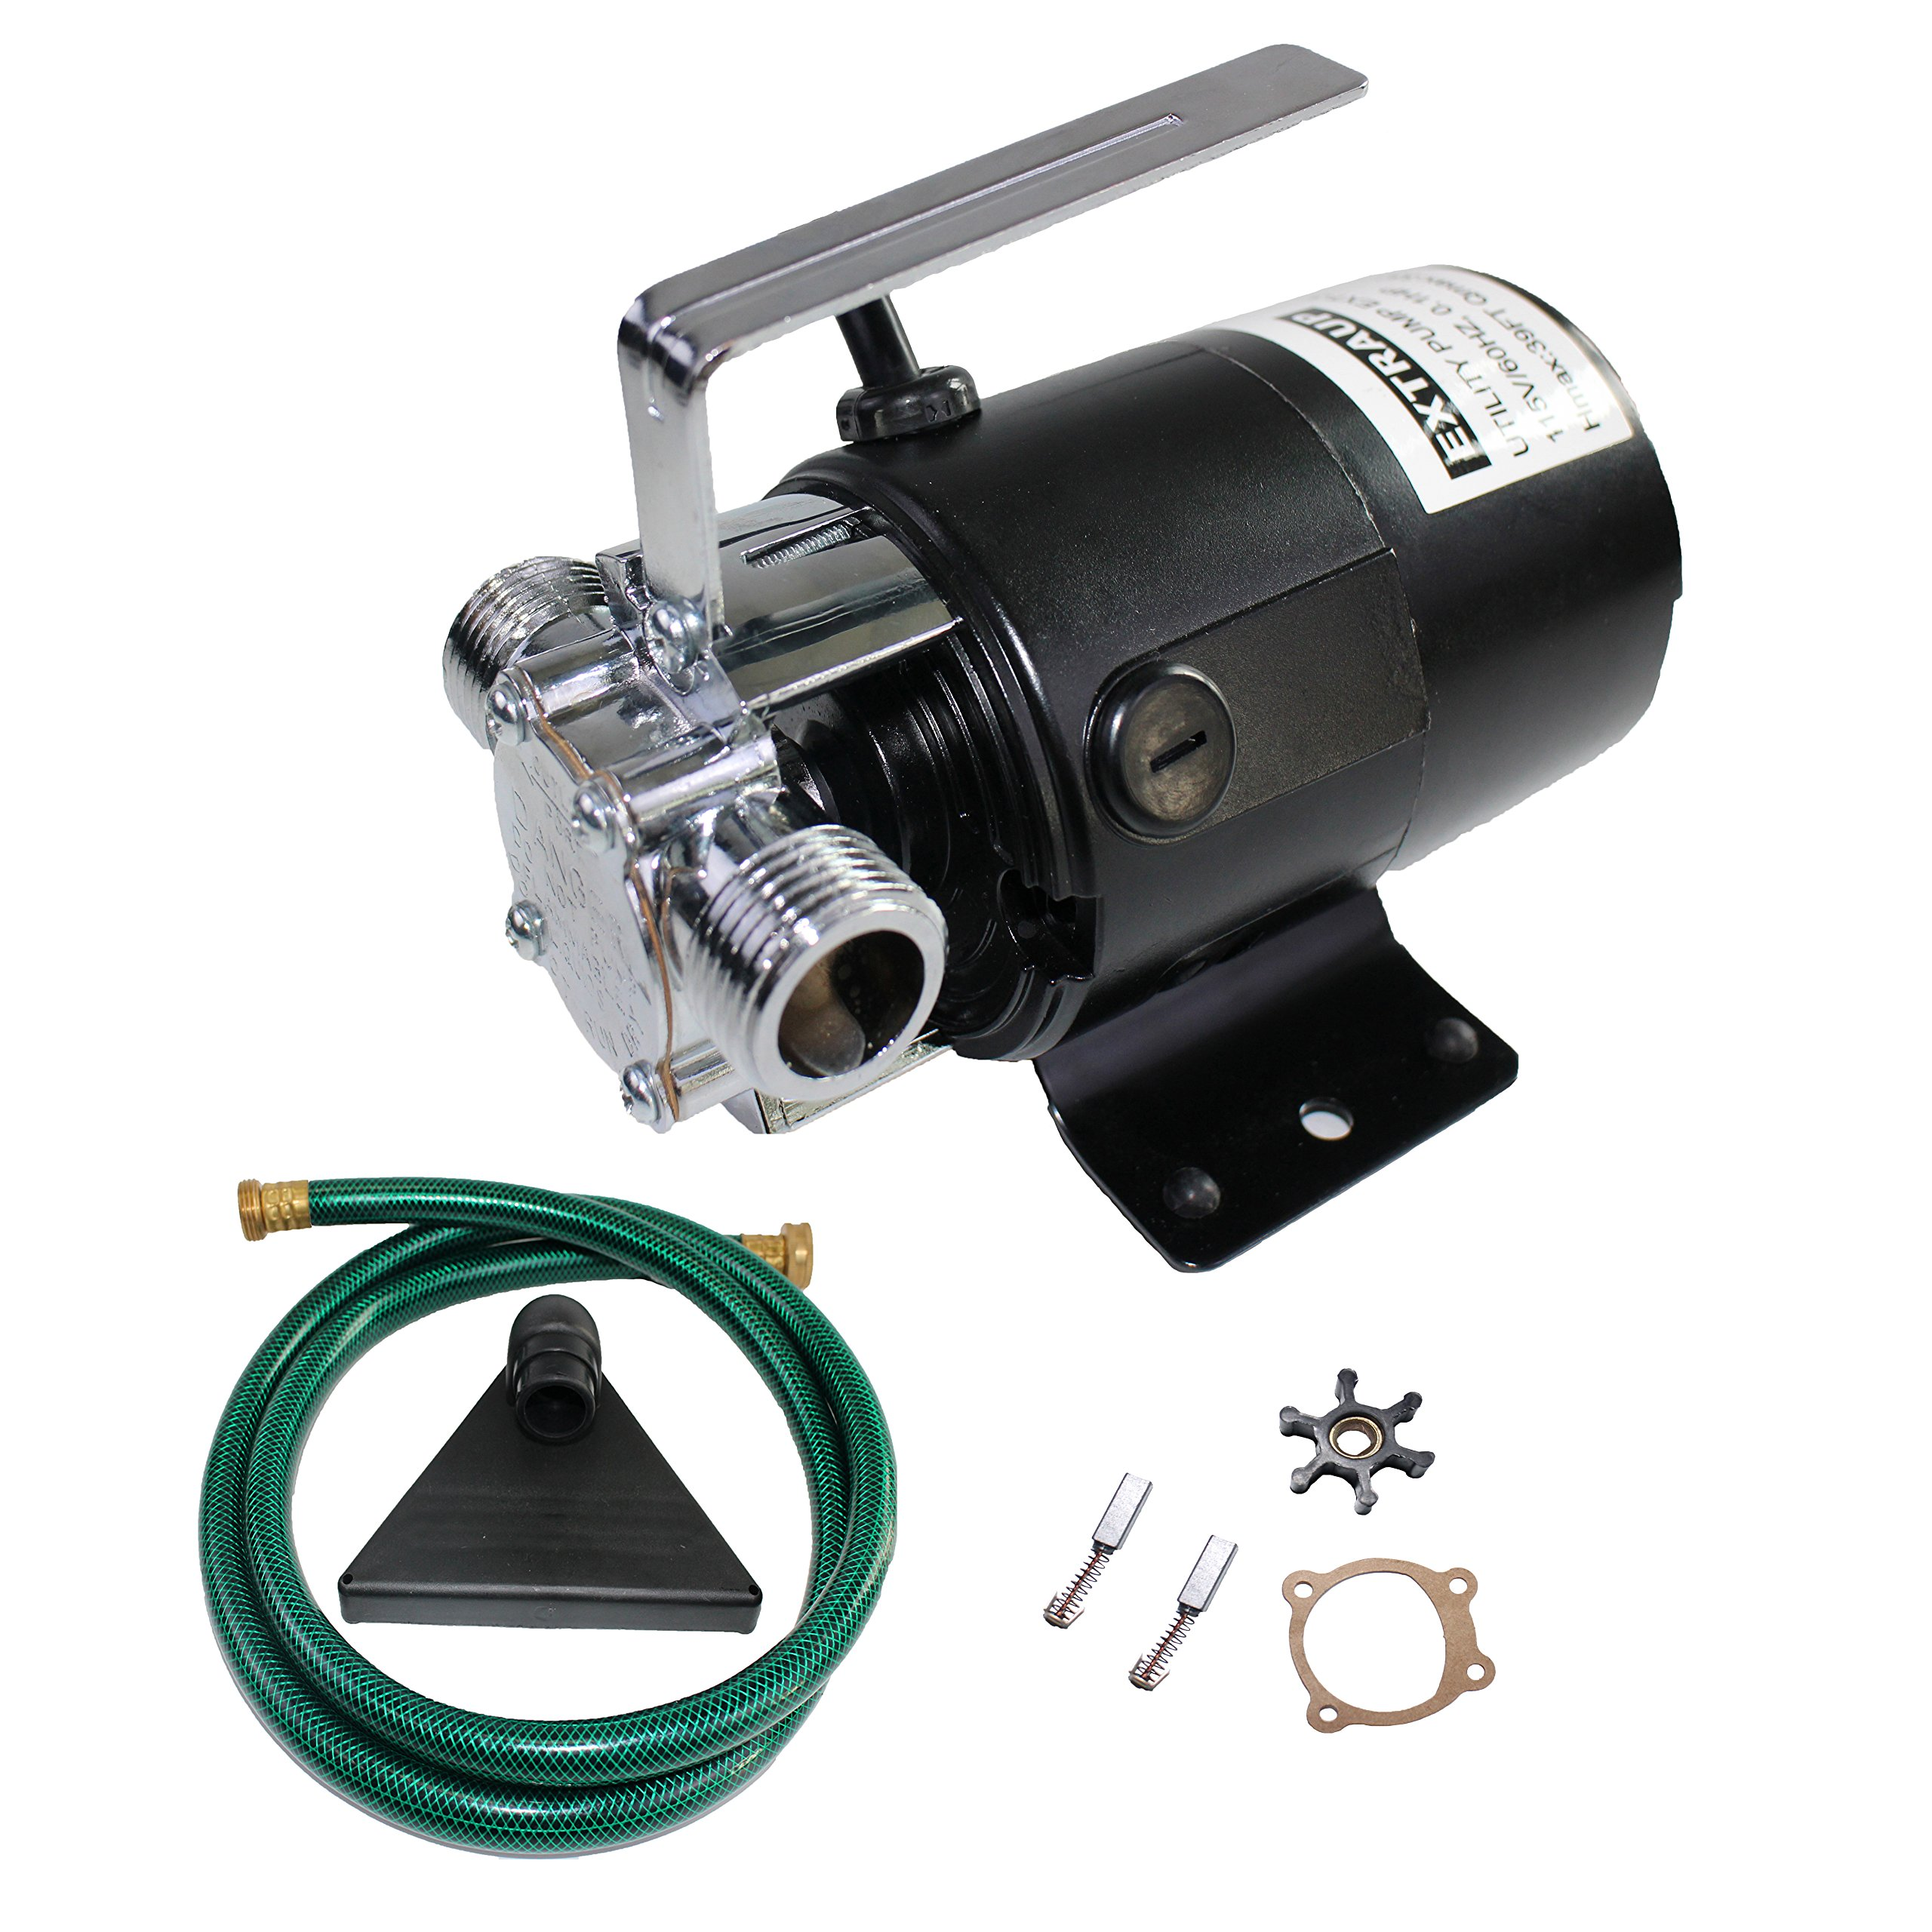 EXTRAUP 115Volt 330 GPH Portable Low Suction Electric Water Transfer Revmoval Utility Pump With Suction Hose Kit